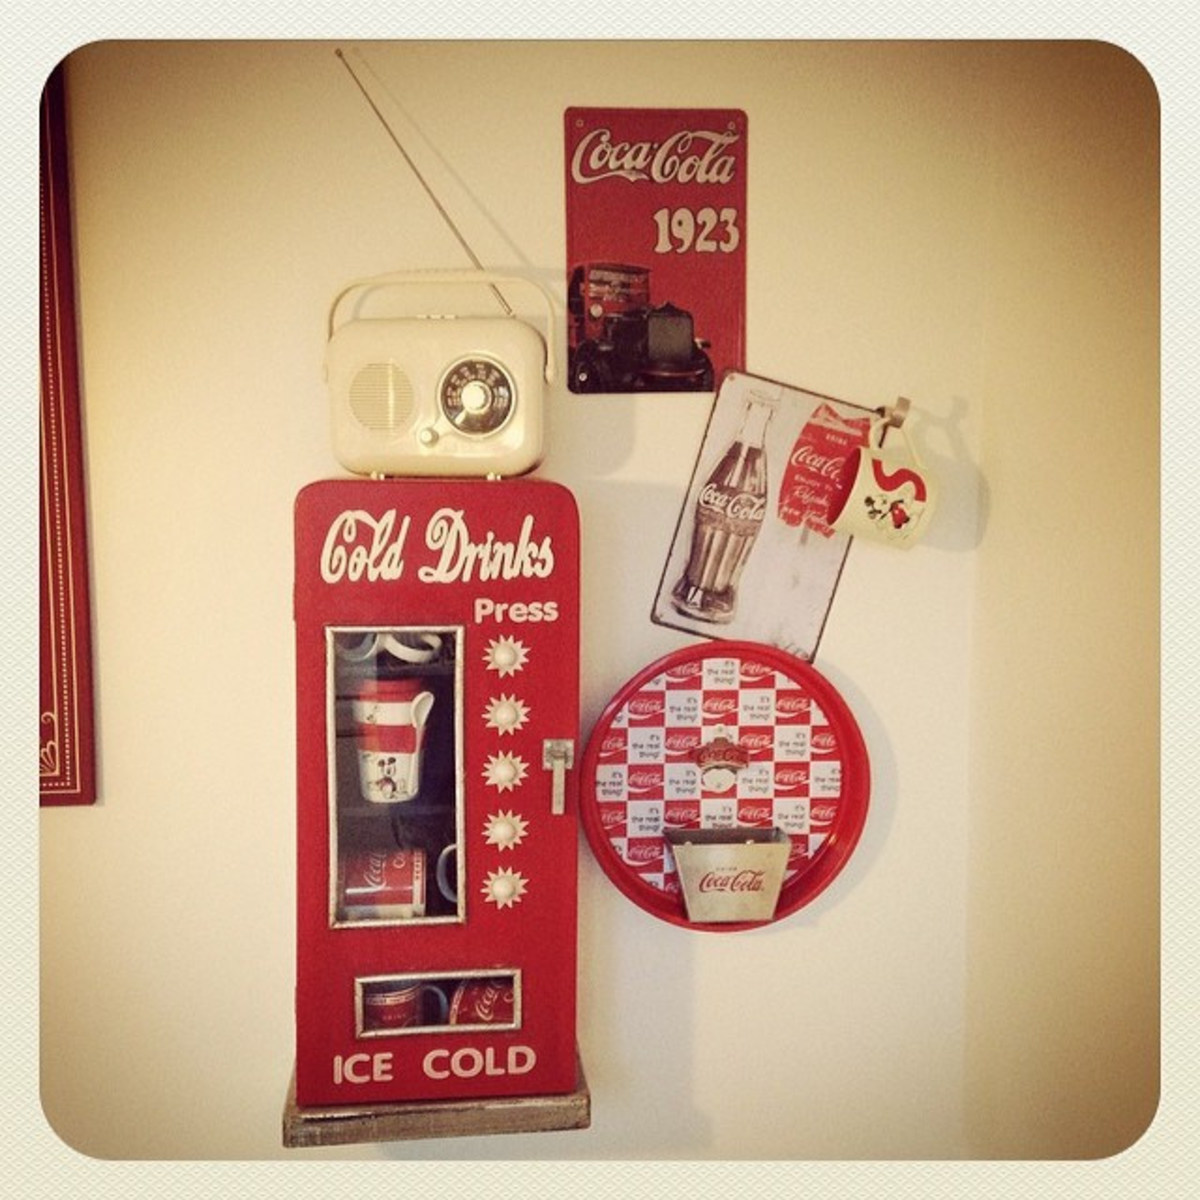 Coca-Cola items are some of the most iconic diner accessories.